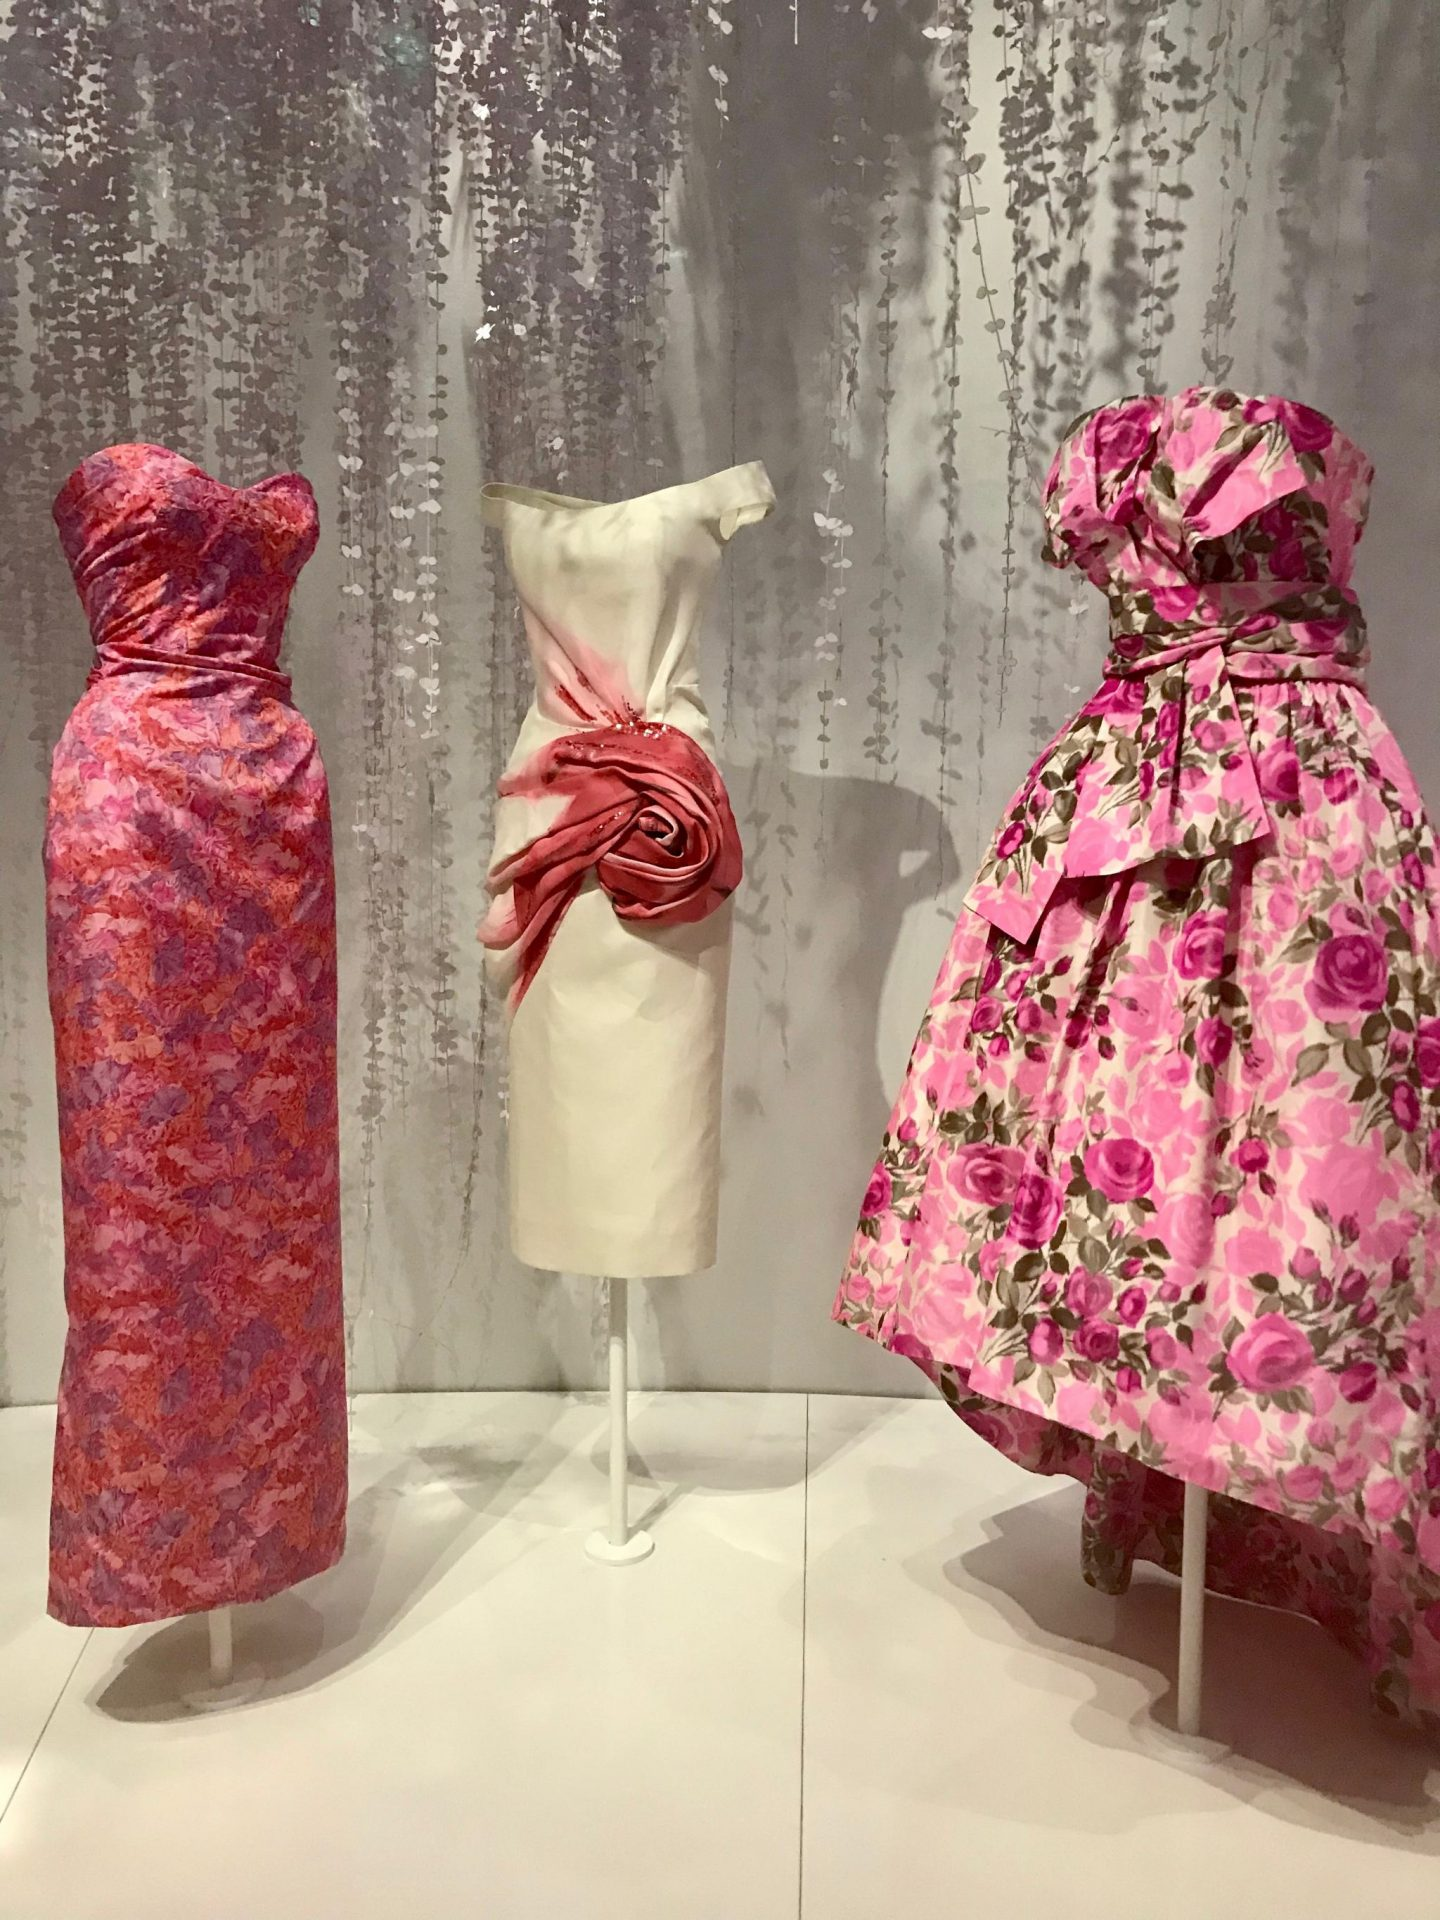 I was lucky to get a couple of tickets to see the Dior exhibition. The first time I tried to book, every date was sold out, but then a desicion to extend the exhibition gave me a second chance and I got lucky.